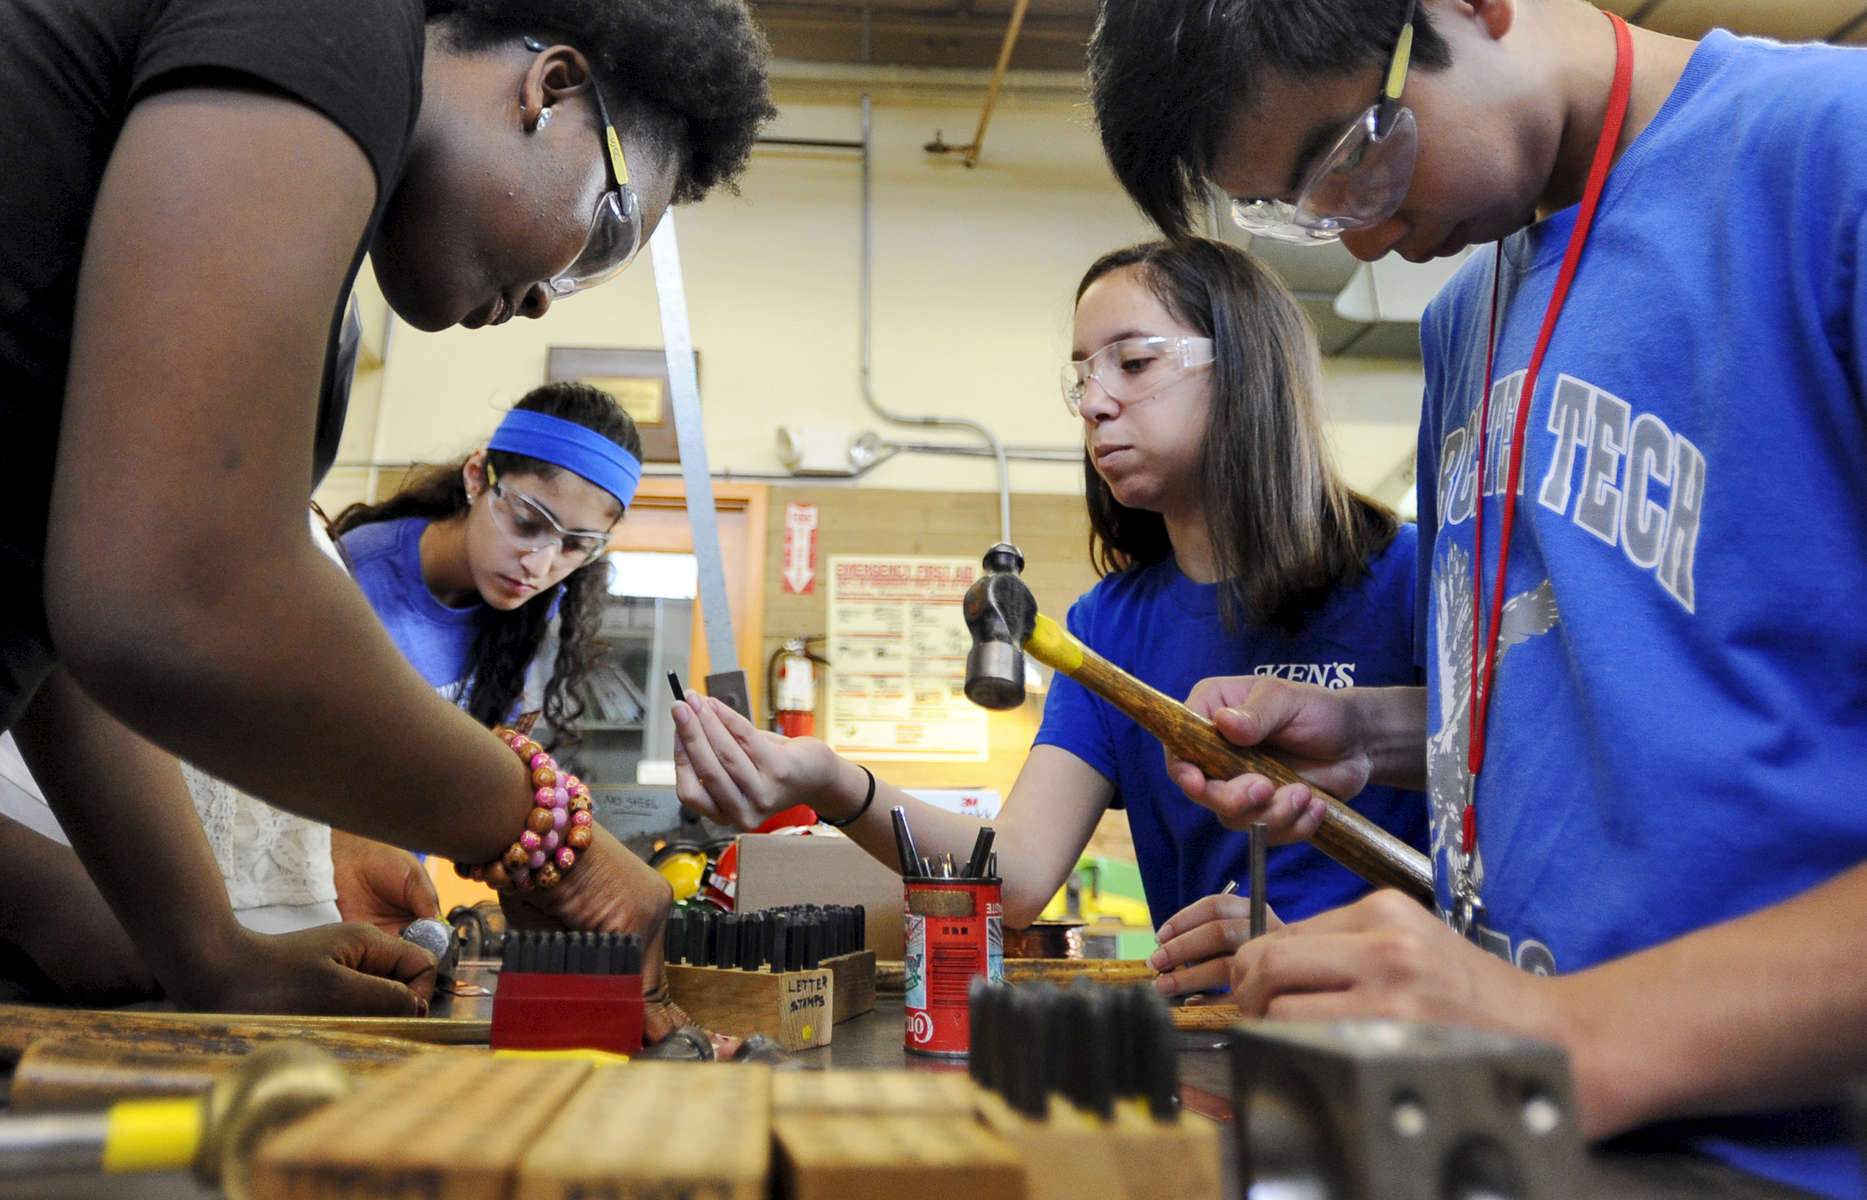 Worcester high school students Emmanuella Amoah, 5, left, and Hoang Vo, 15, work on hammering designs into copper bracelets during the STEM initiative jewelry-making class at the Worcester Center for Crafts on Wednesday, July 15, 2015.